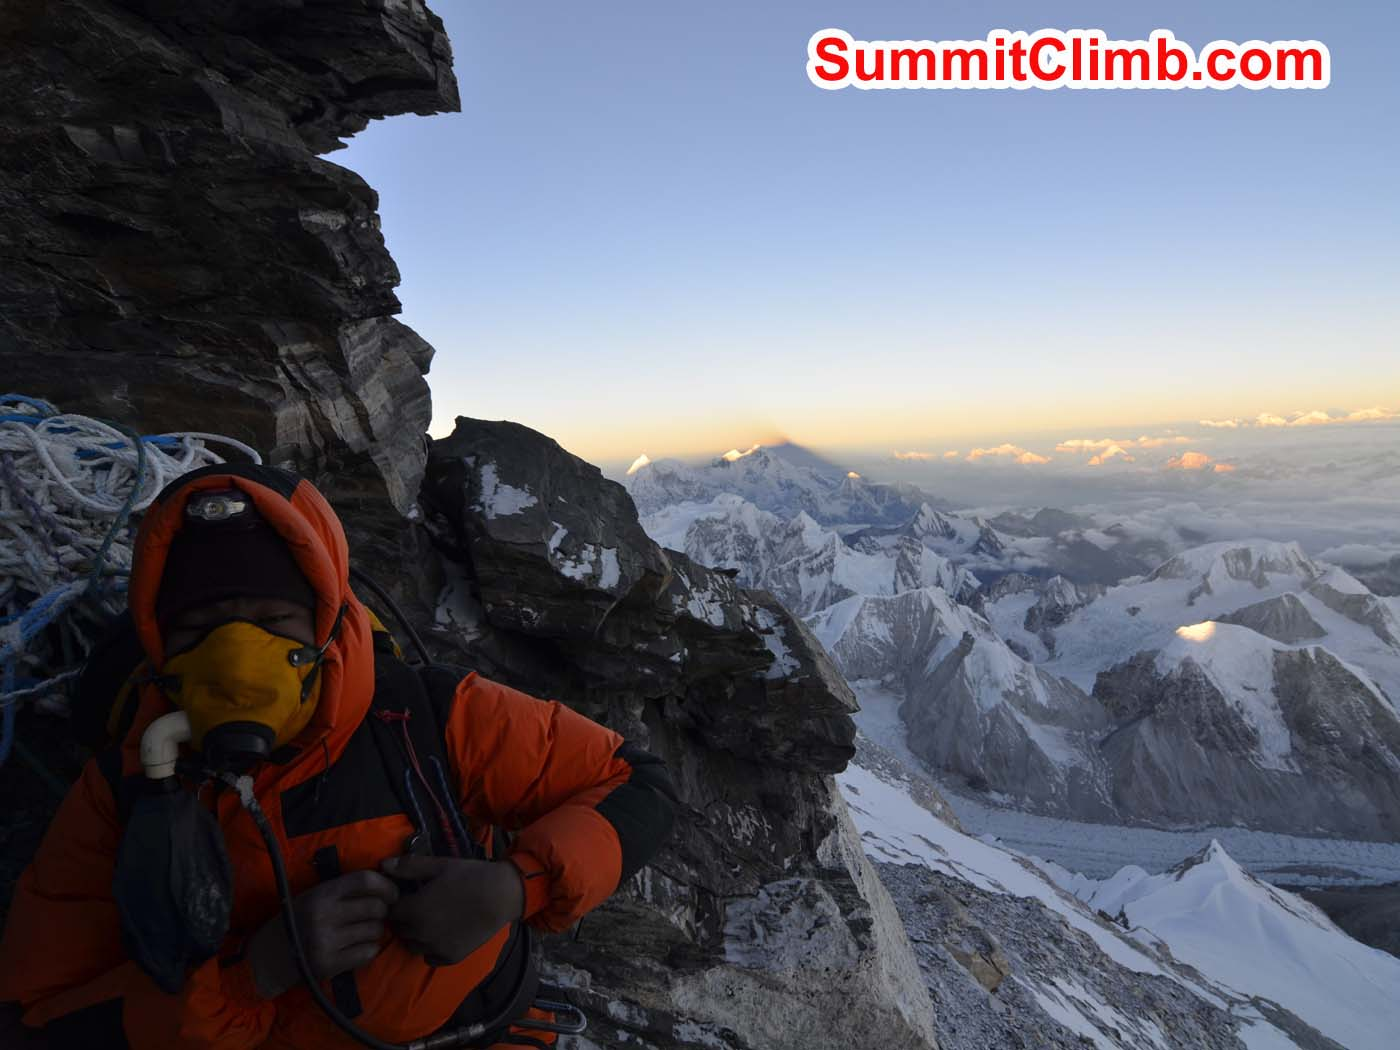 Pasang Sherpa takes a break in the rock band during the ascent to the summit. Dmitri Nichiporov photo